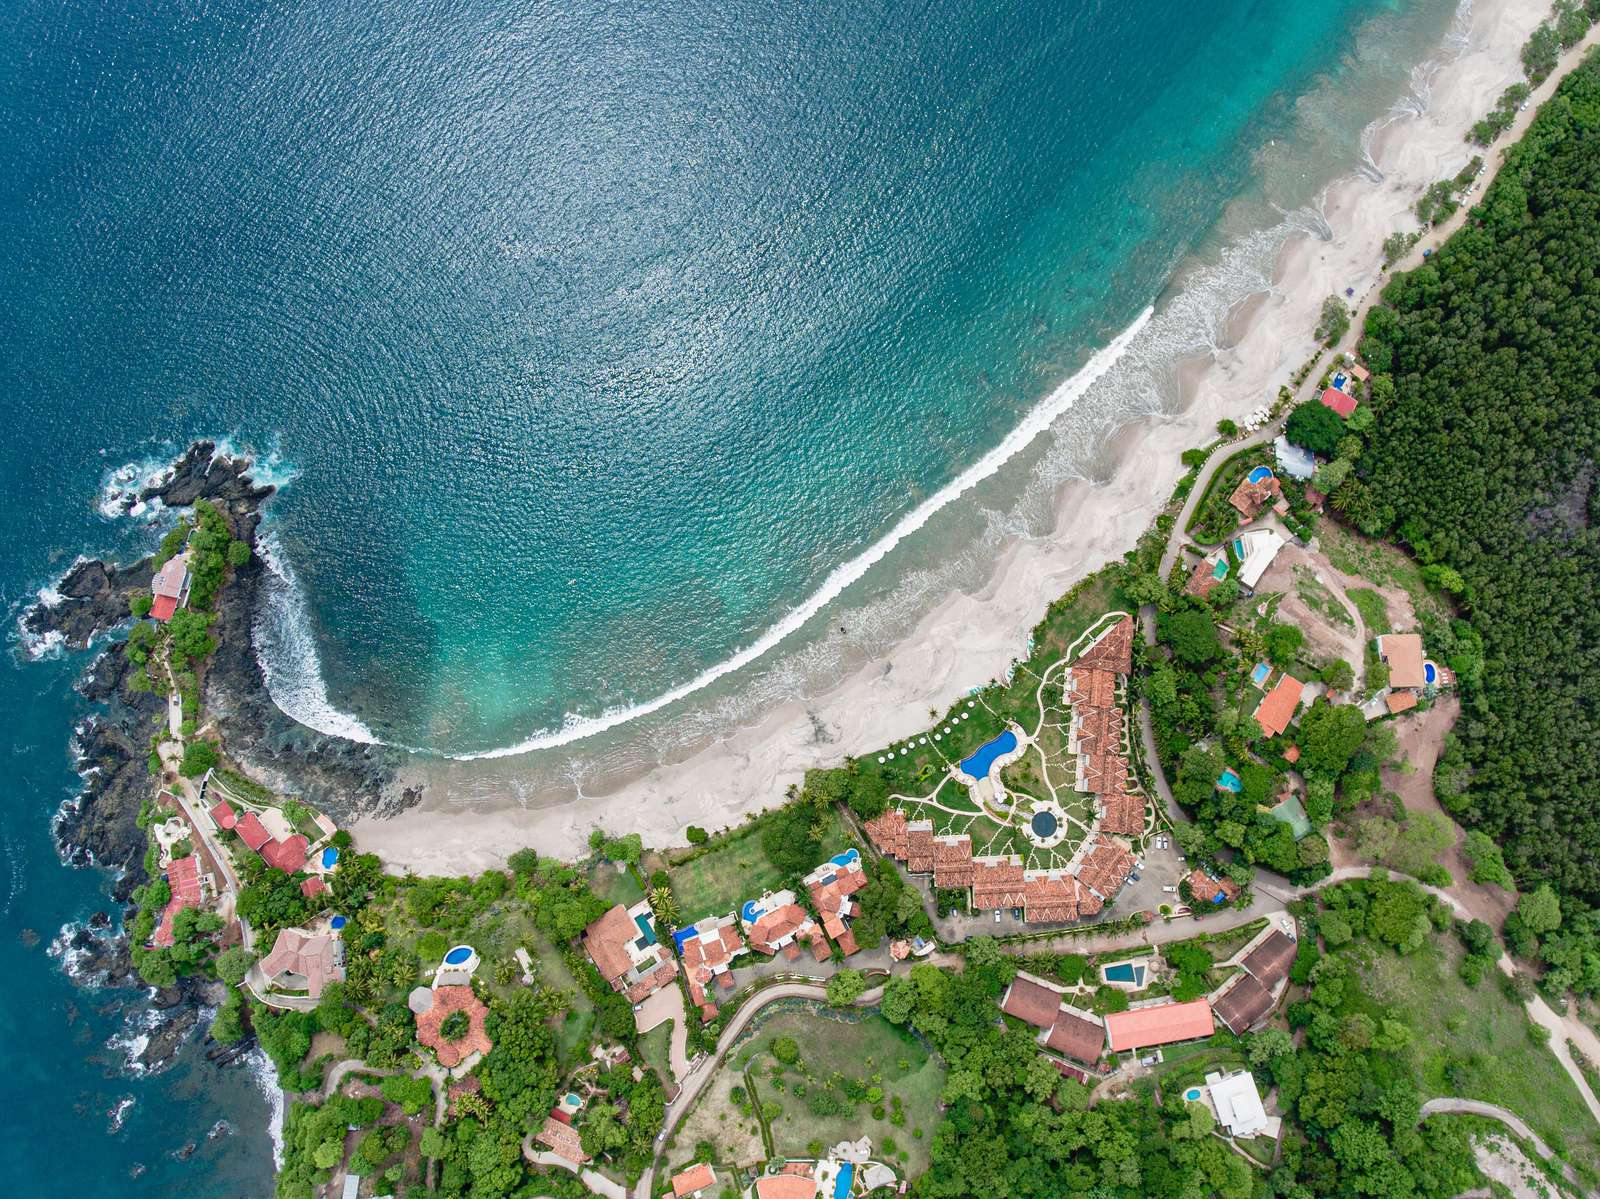 Aerial view of Flamingo beach near Casa Rosa